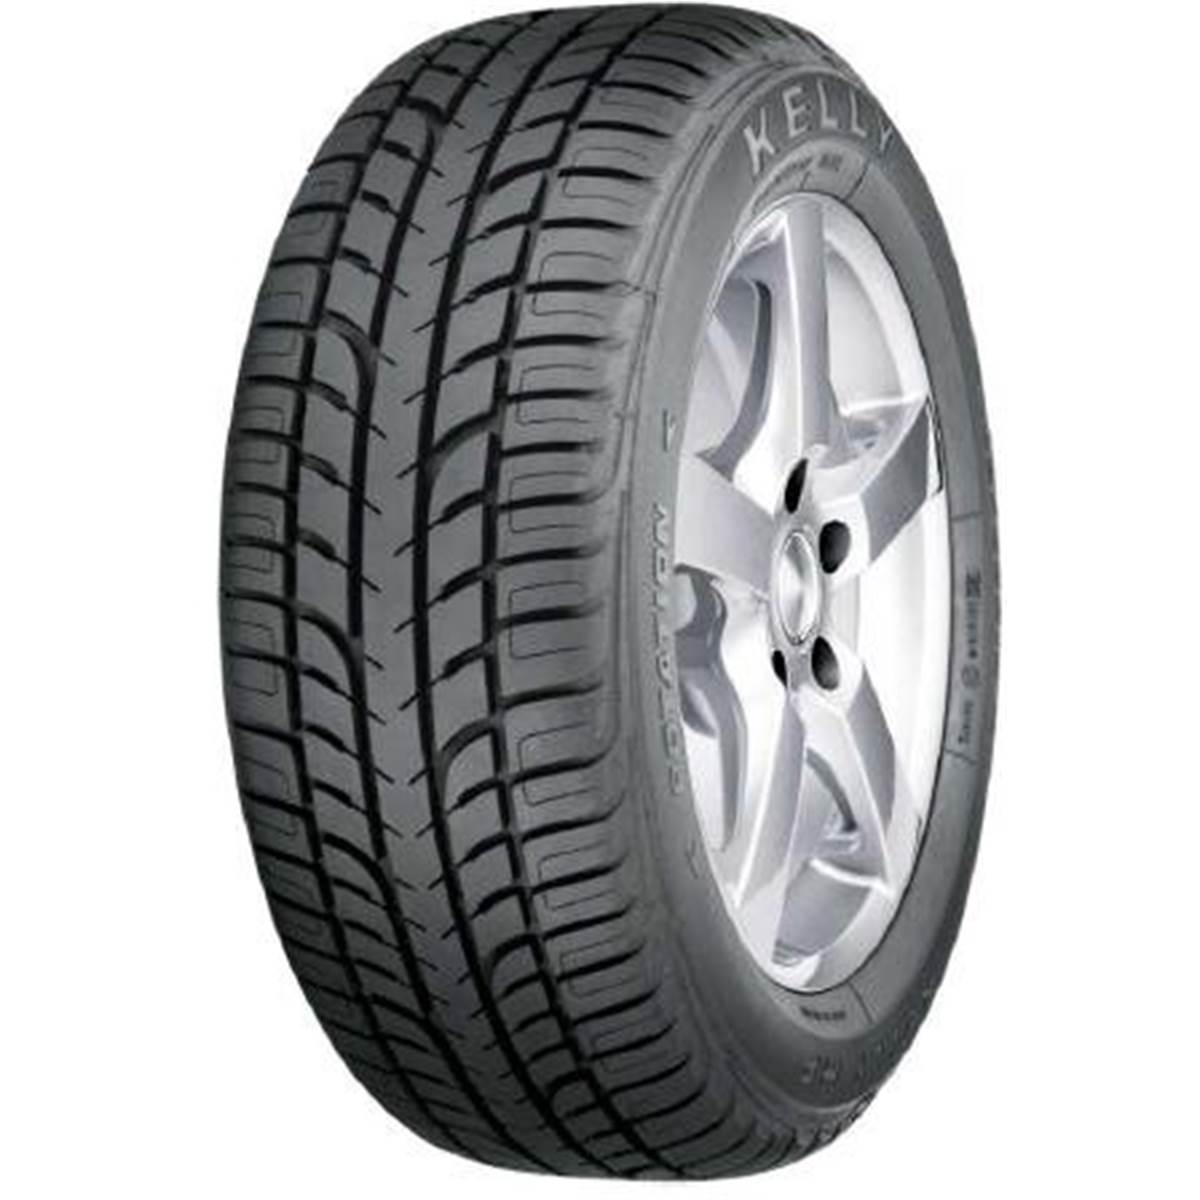 Pneu Kelly 195/65R15 91T Hp